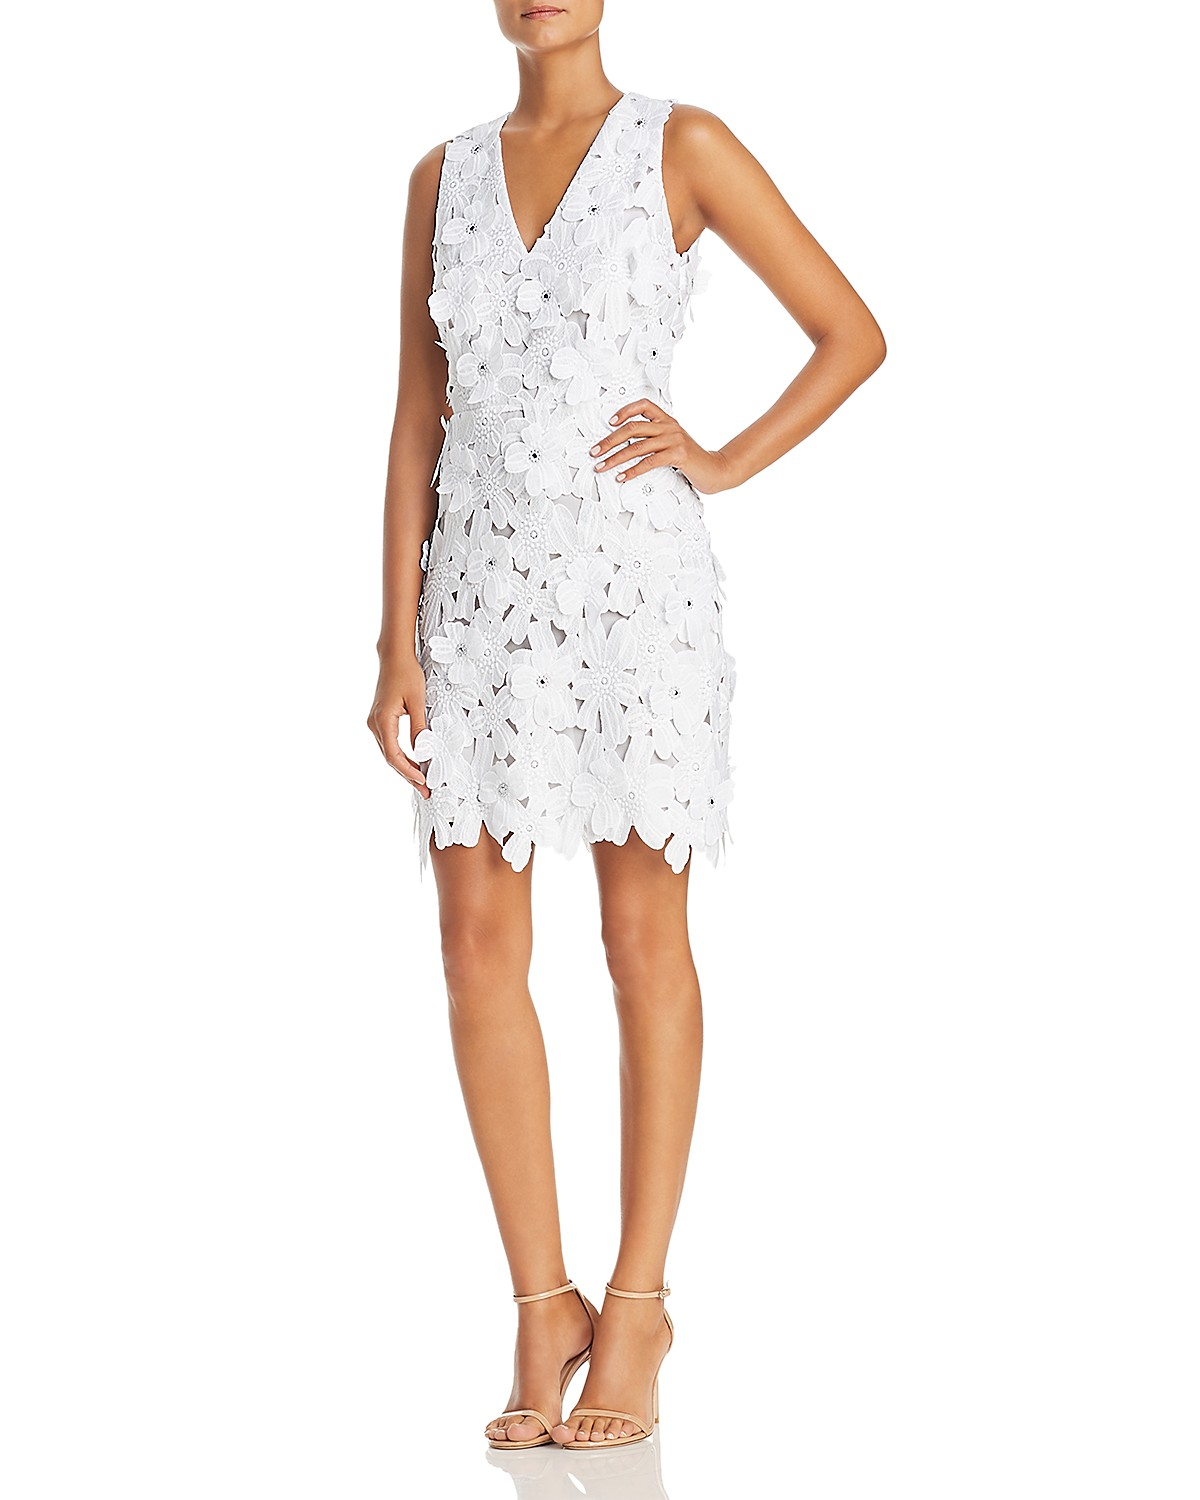 dress White dress embroidered SUHsDLh9th SUHsDLh9th dress White dress embroidered embroidered SUHsDLh9th embroidered White White tq4Eax